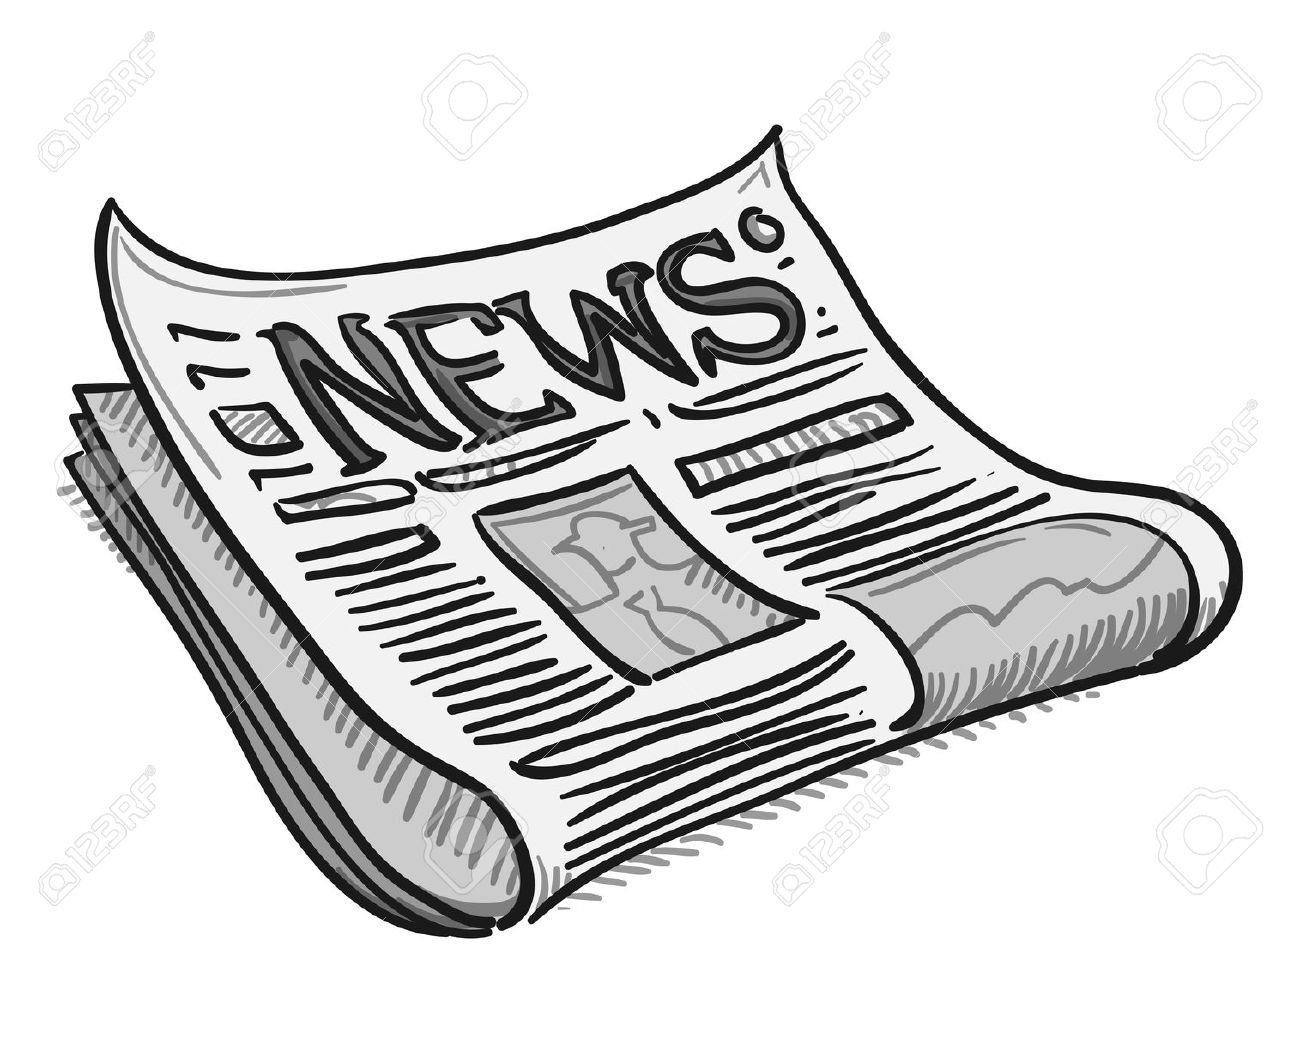 Free Newspaper Clipart Best Activities Clip Art ⋆ ClipartView.com.